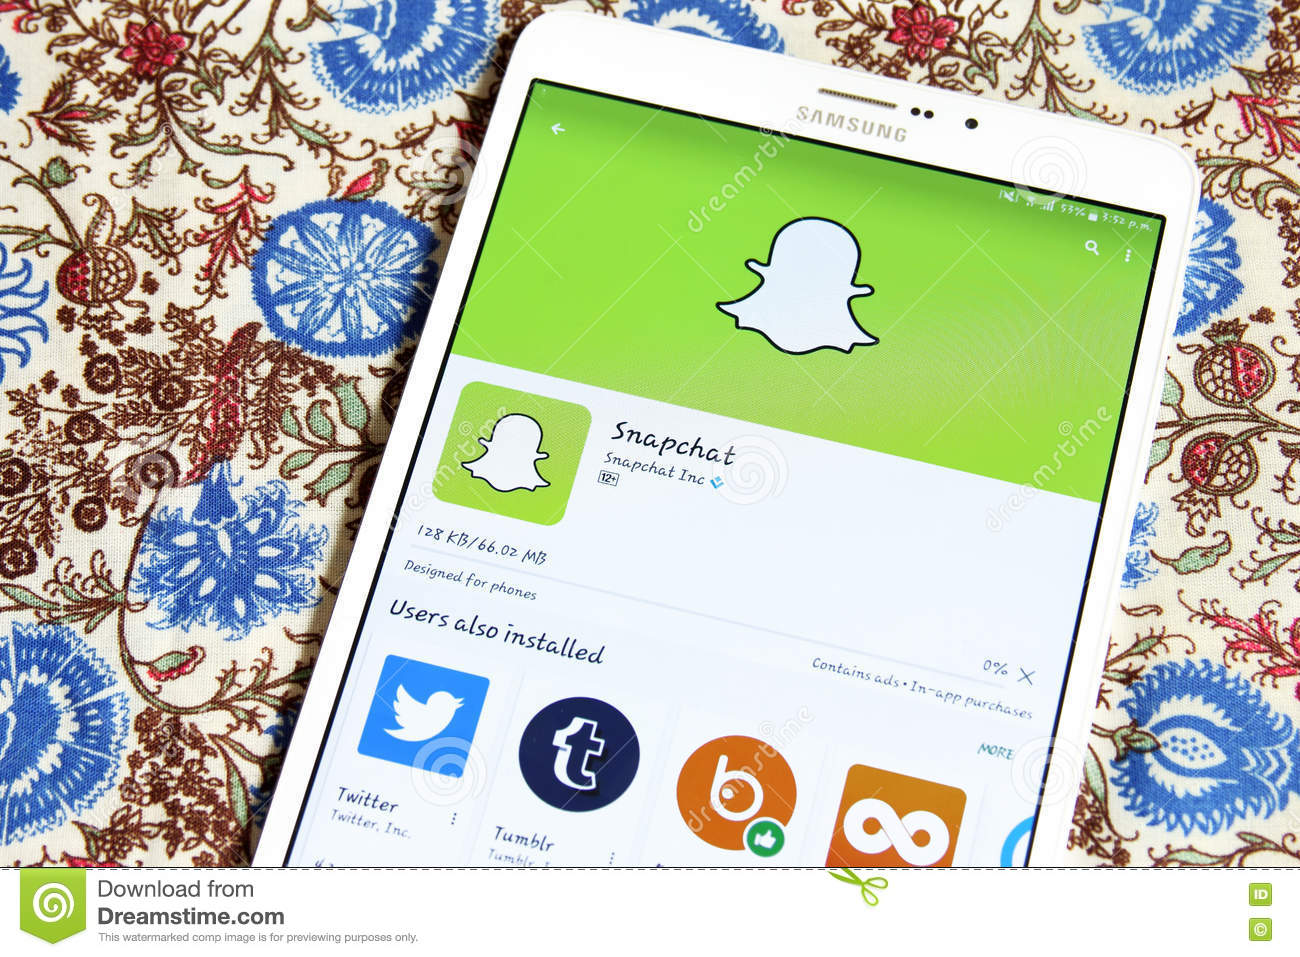 Snap chat app download